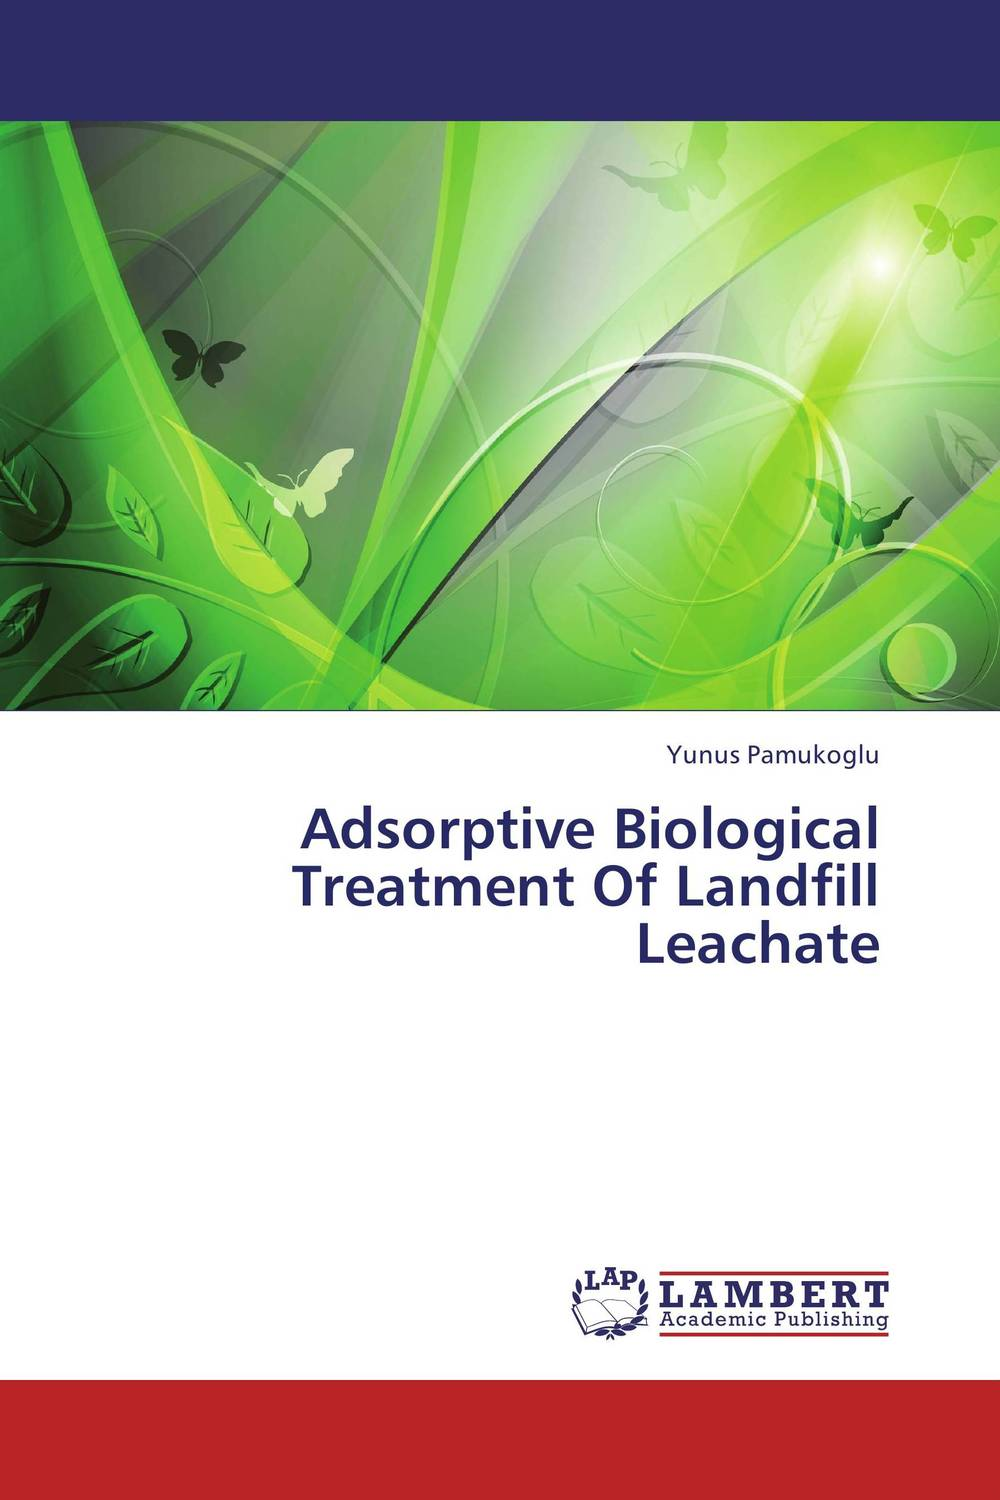 Adsorptive Biological Treatment Of Landfill Leachate chemical and biological screening for licorice roots